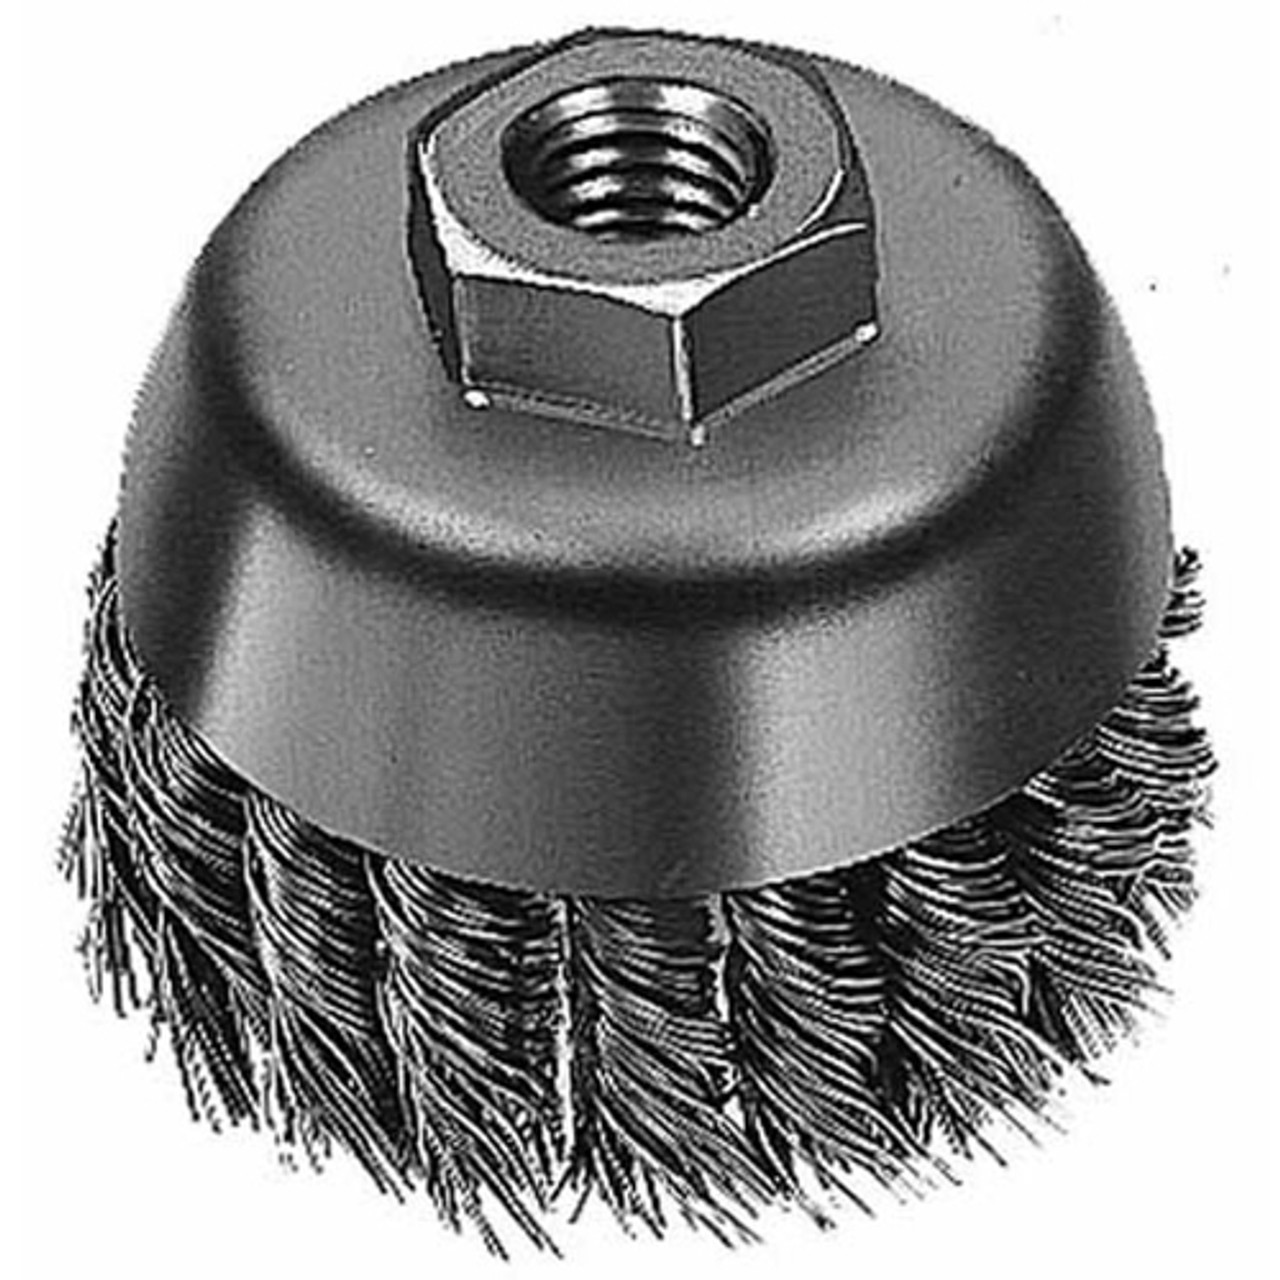 Milwaukee 48-52-5040 3 in. Knot Wire Cup Brush - Carbon Steel